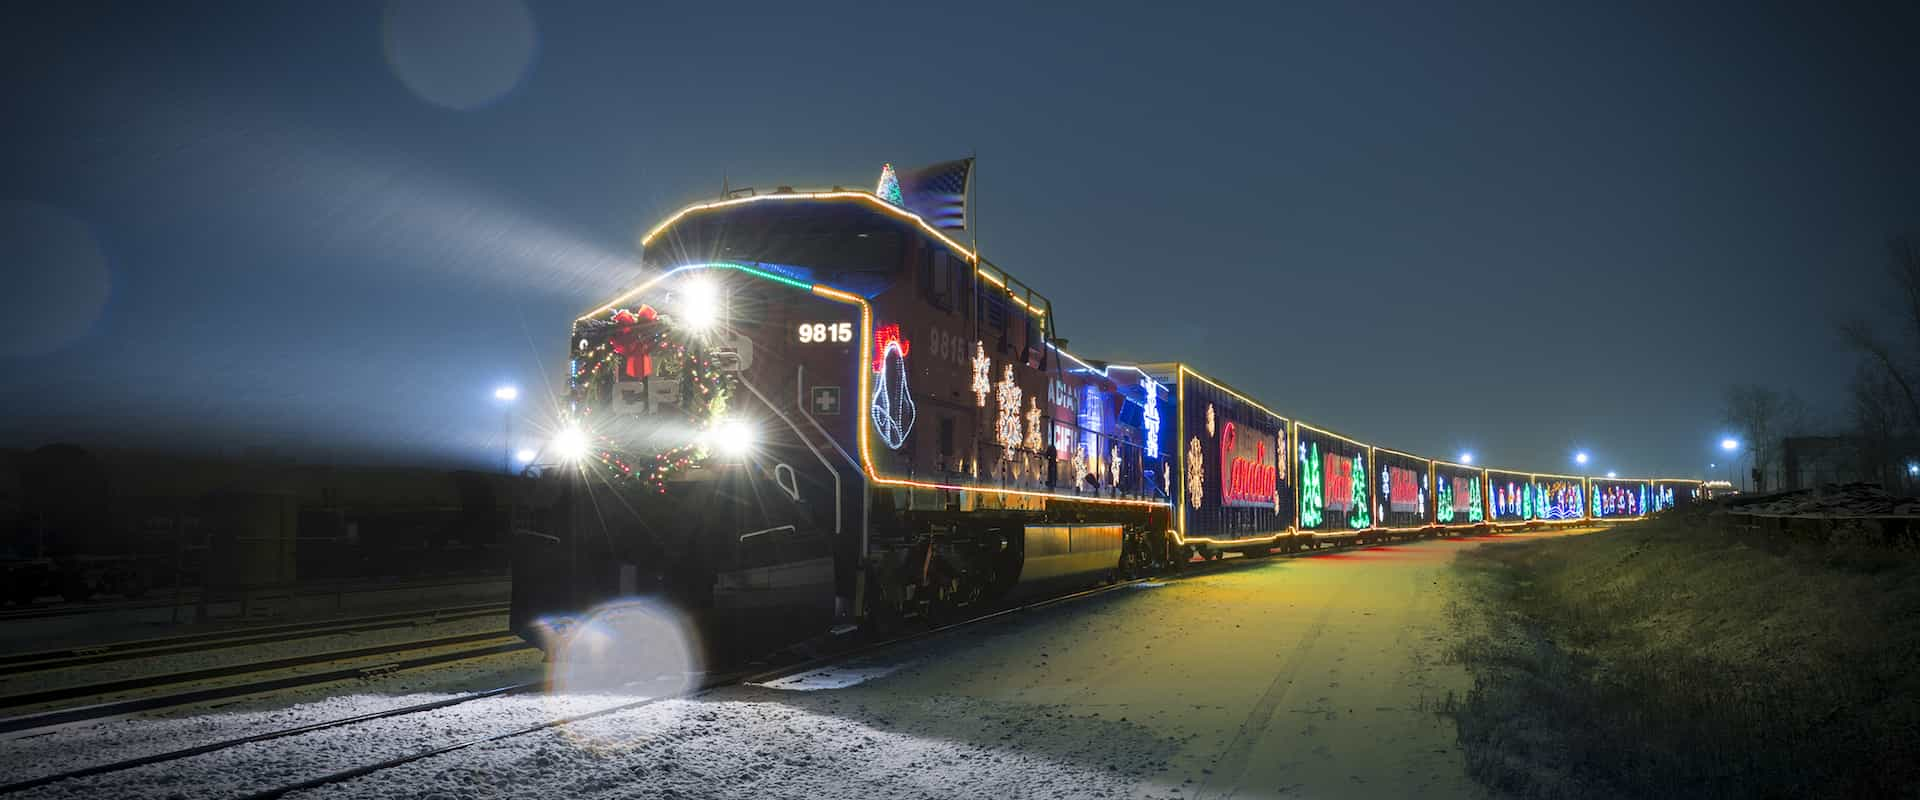 See the CP Holiday Train at Christmas in December in Banff